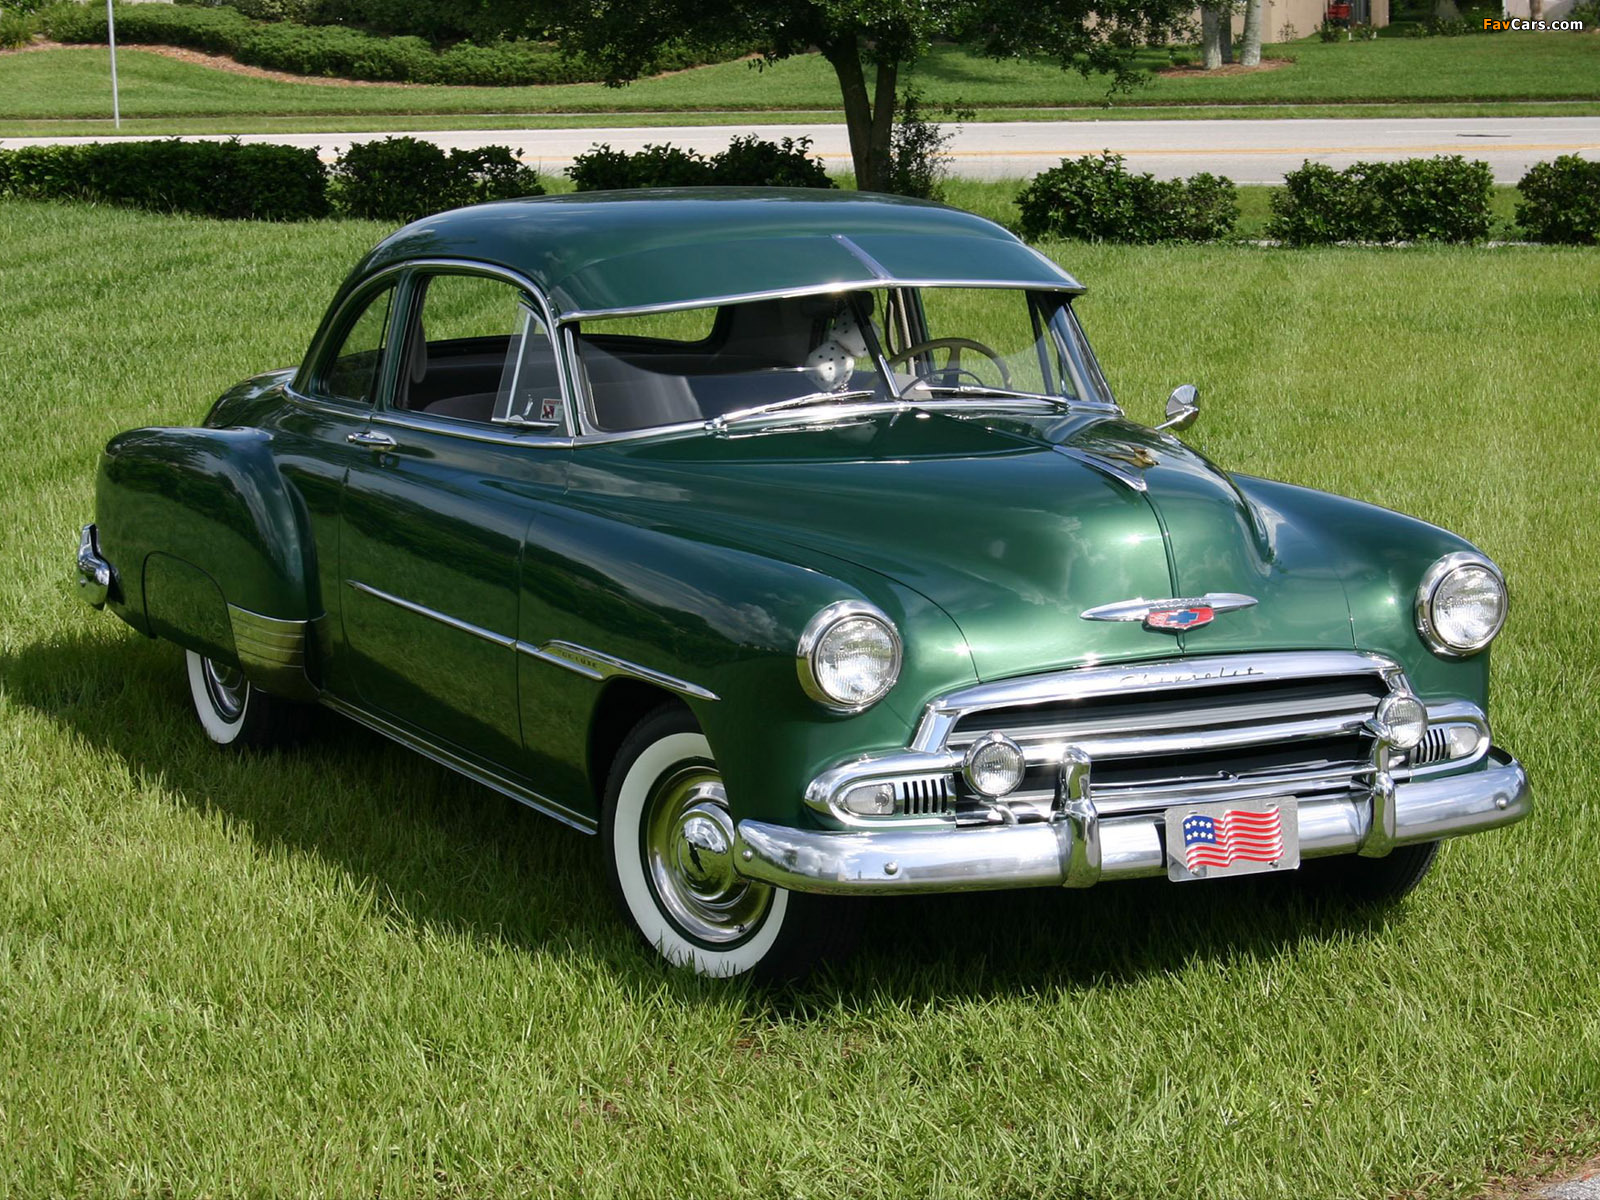 1951 chevrolet styleline deluxe 2 door sport coupe for for 1951 chevy deluxe 4 door for sale